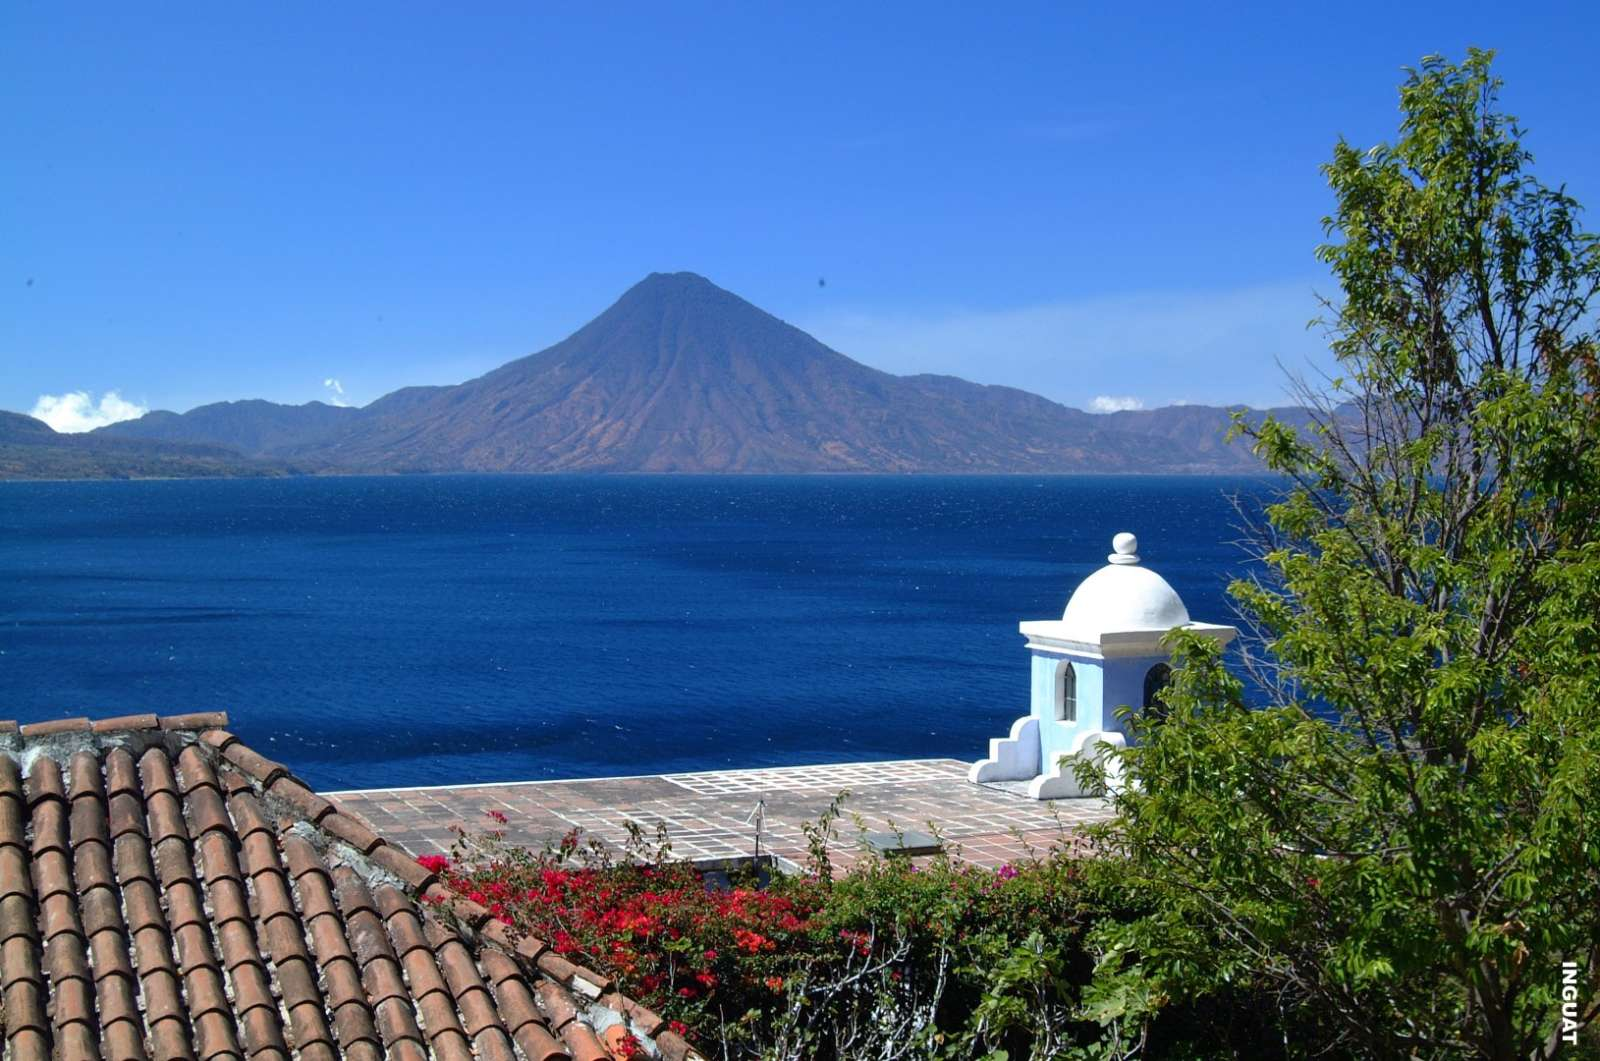 Santa Catarina in Lake Atitlan, Guatemala